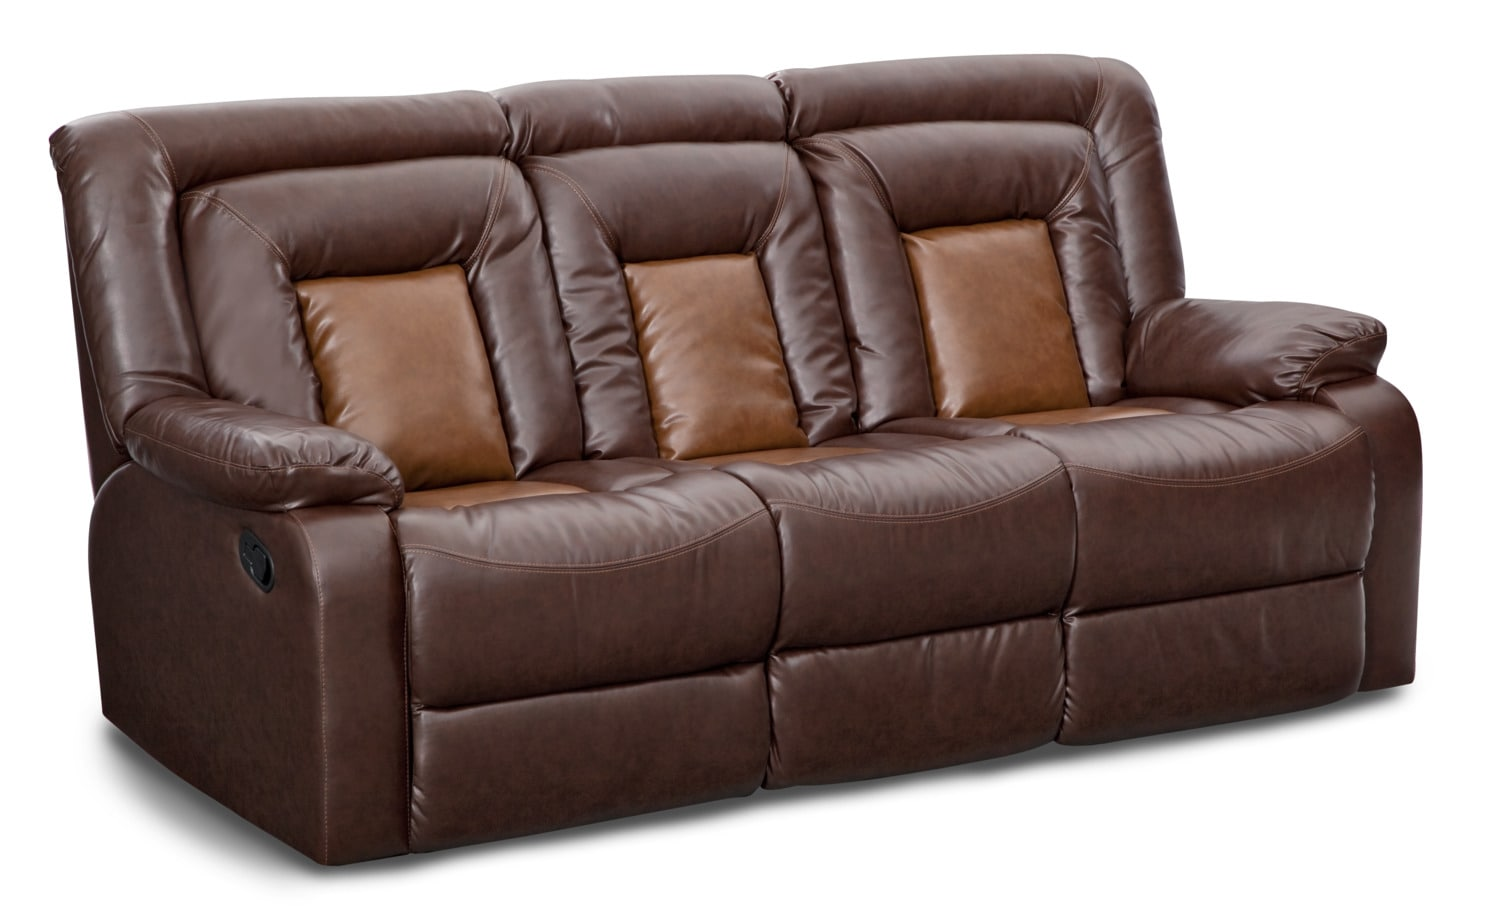 Exceptional Living Room Furniture   Mustang Dual Reclining Sofa With Console   Brown